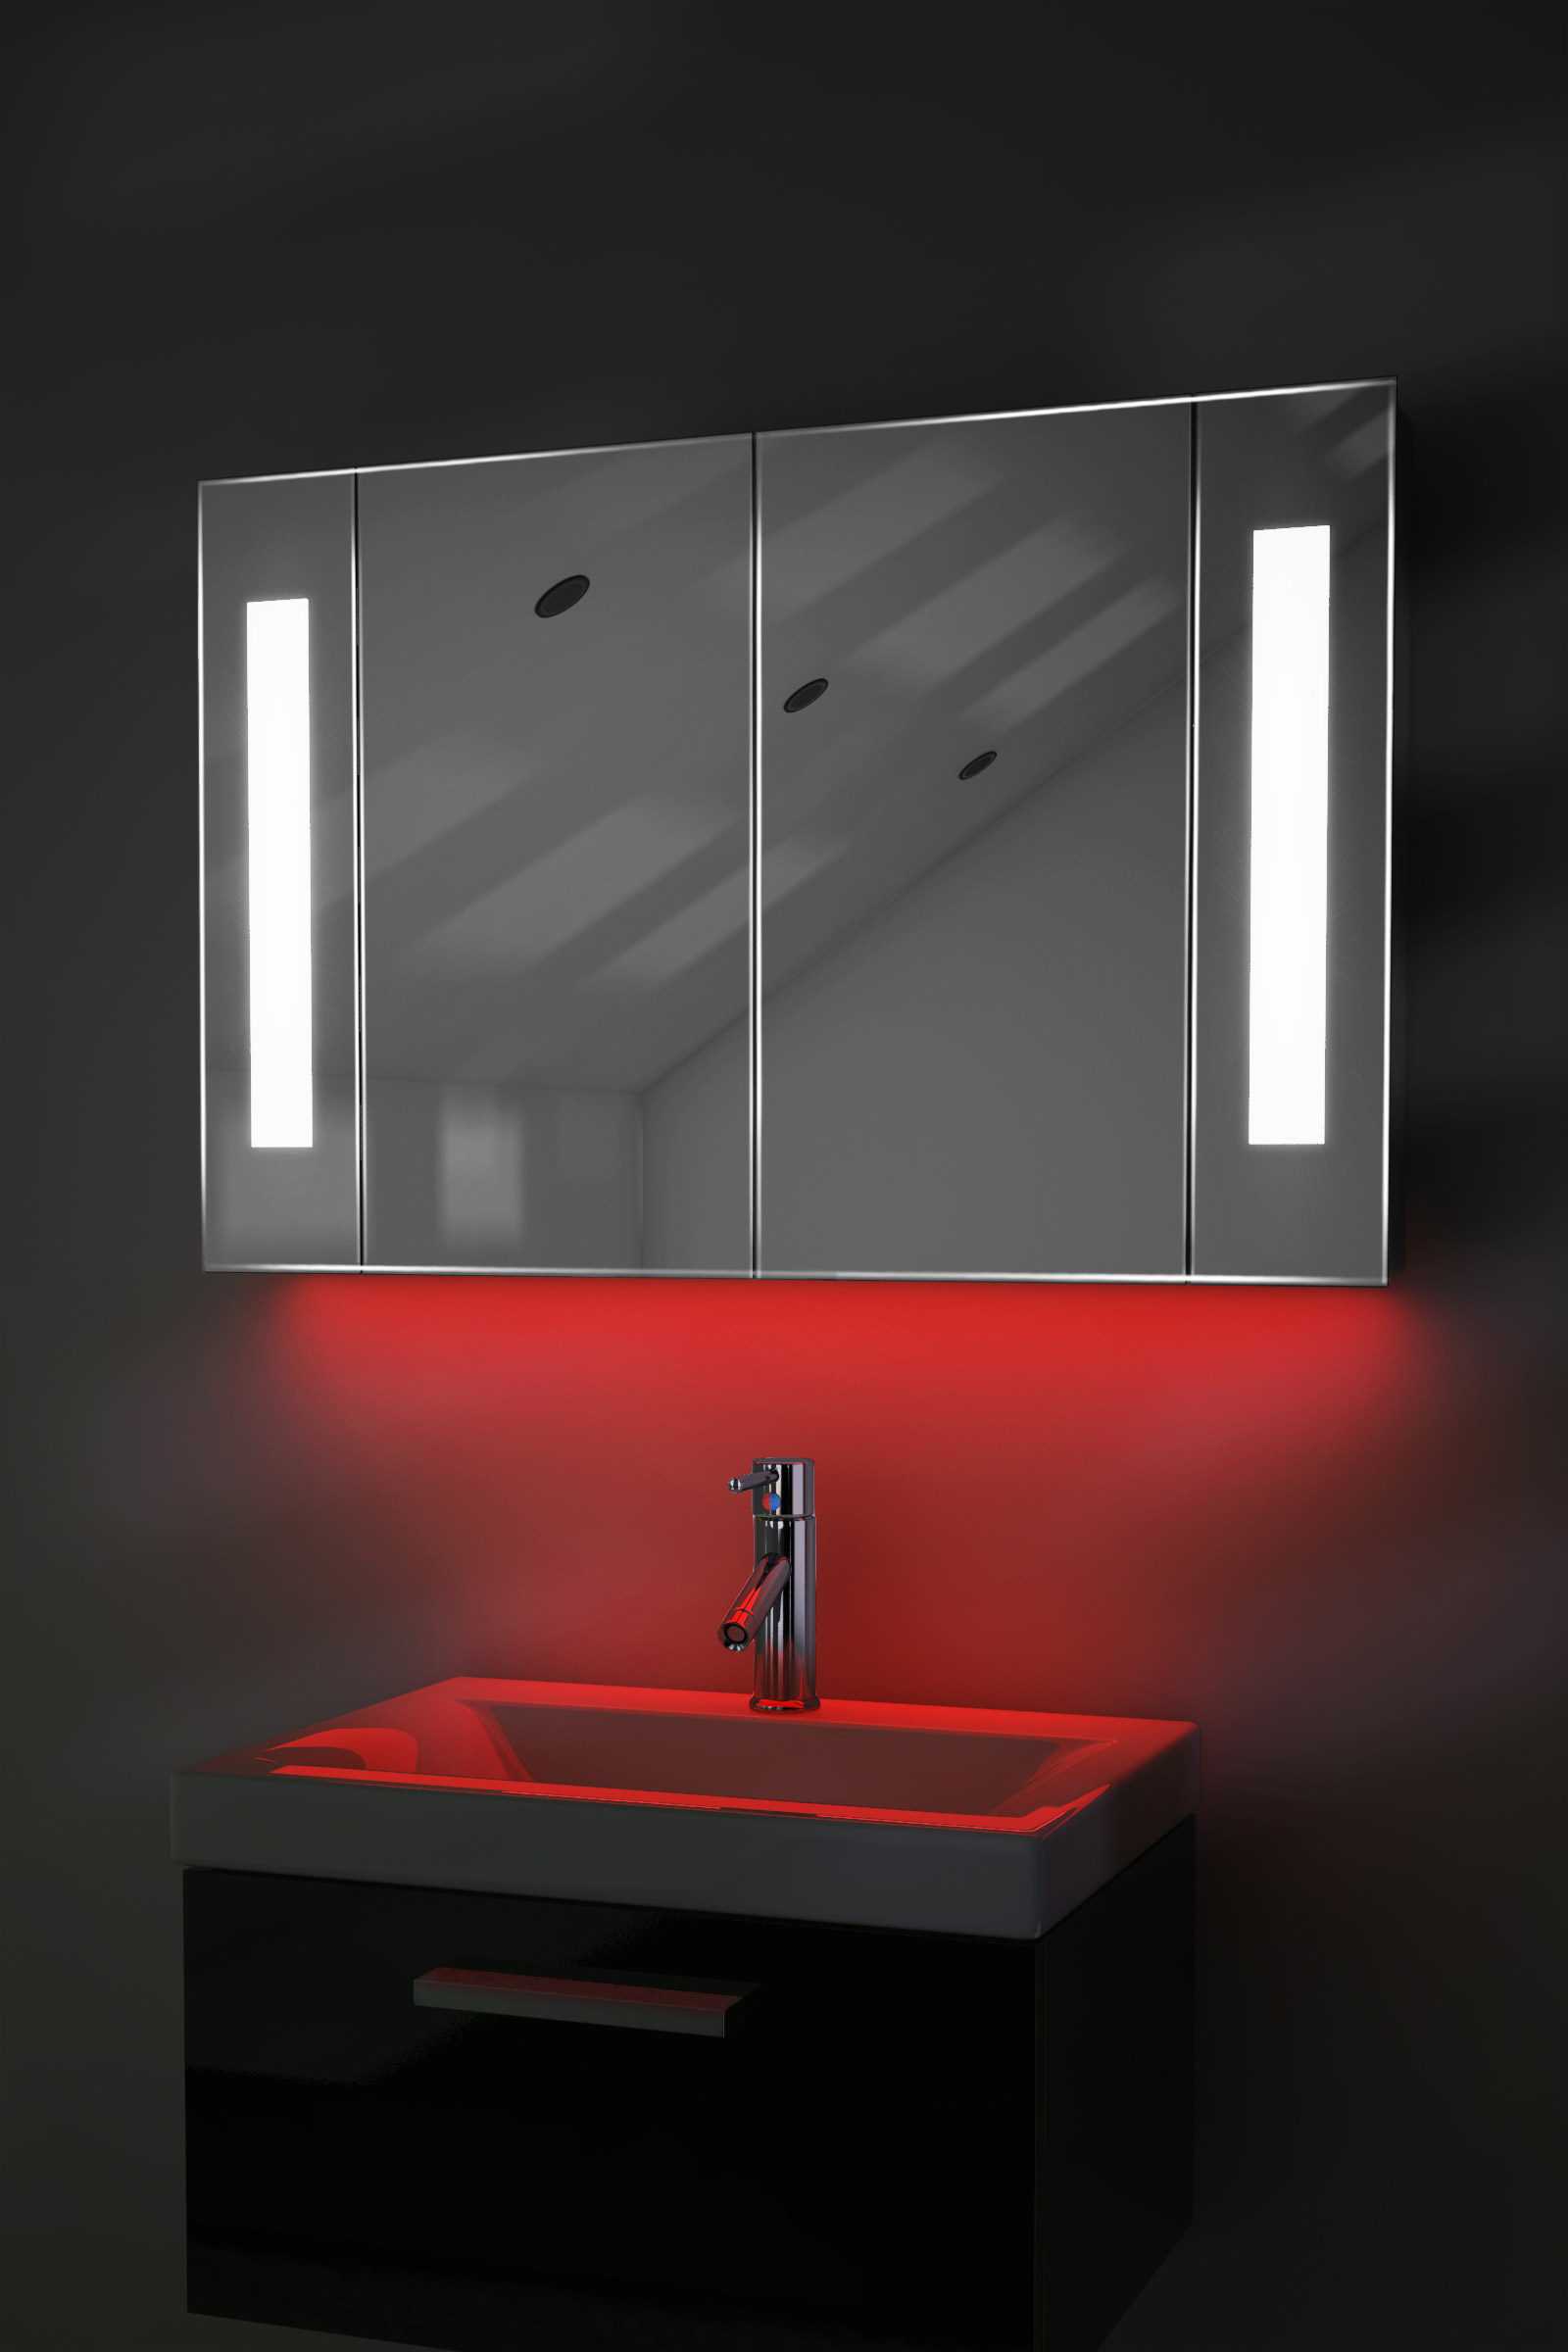 miroir de salle de bain rasage led avec bluetooth rasoir et capteur k120raud. Black Bedroom Furniture Sets. Home Design Ideas